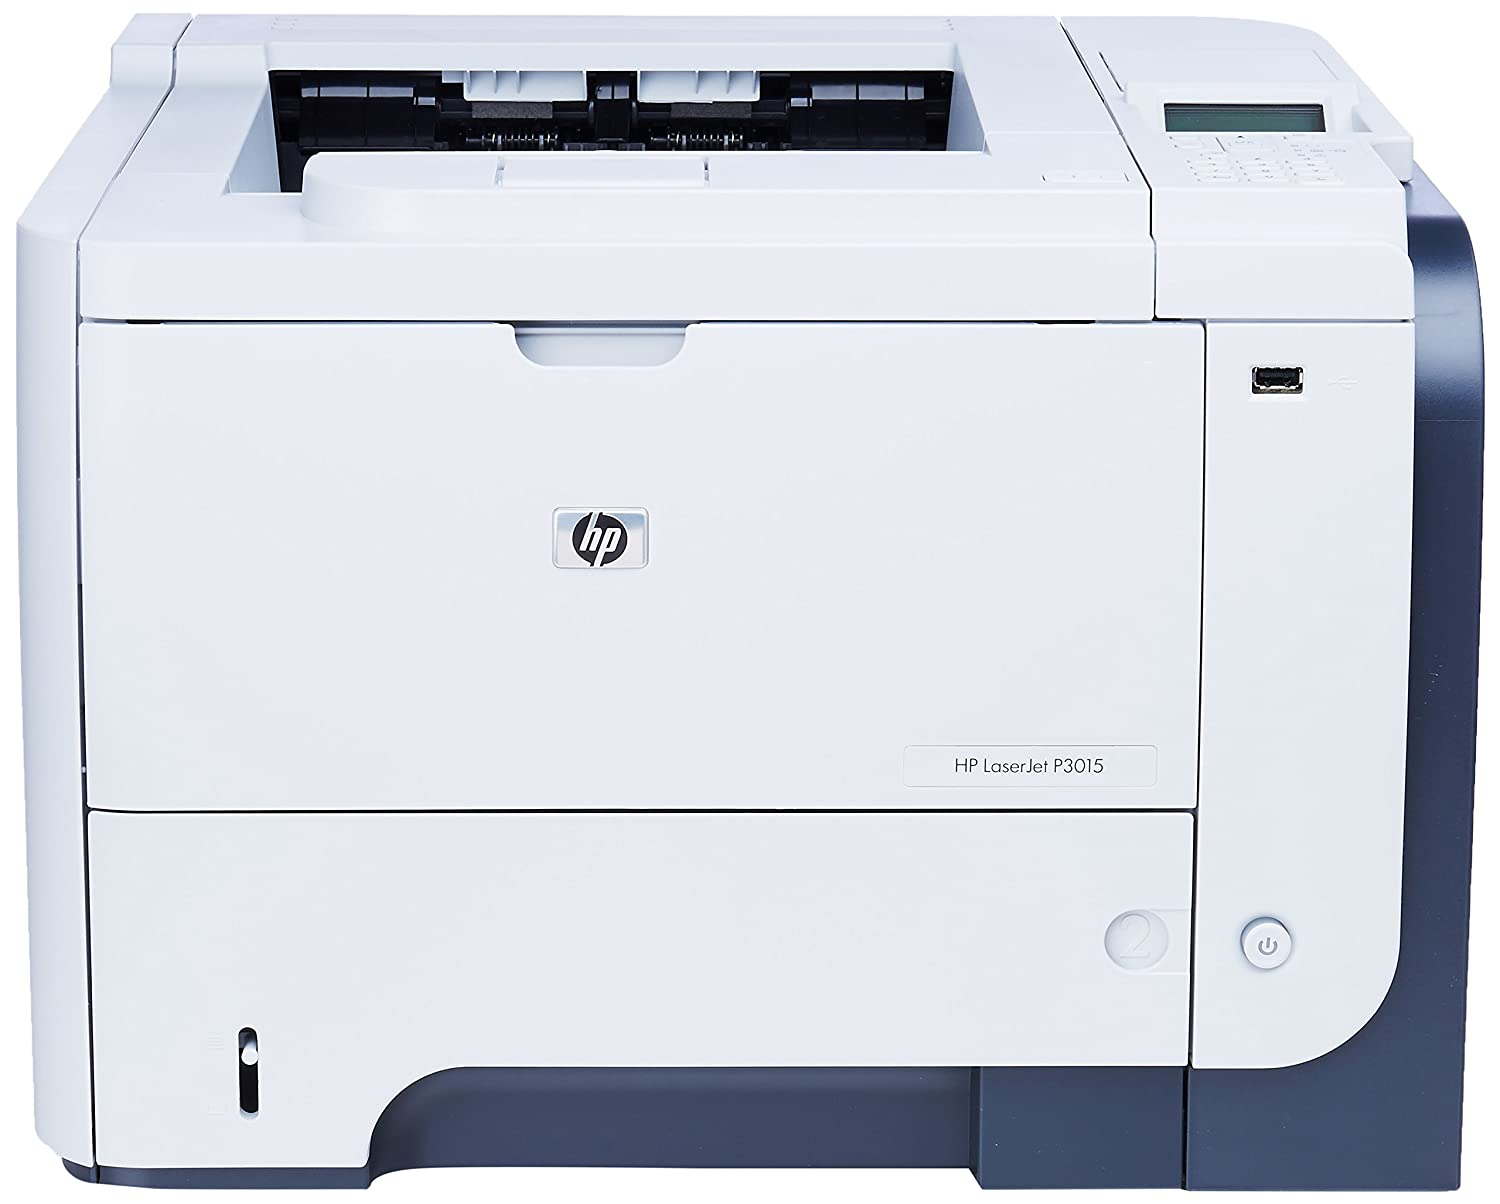 HP LASERJET P3015 PRINTER PCL6 BASIC PRINT DRIVER WINDOWS 7